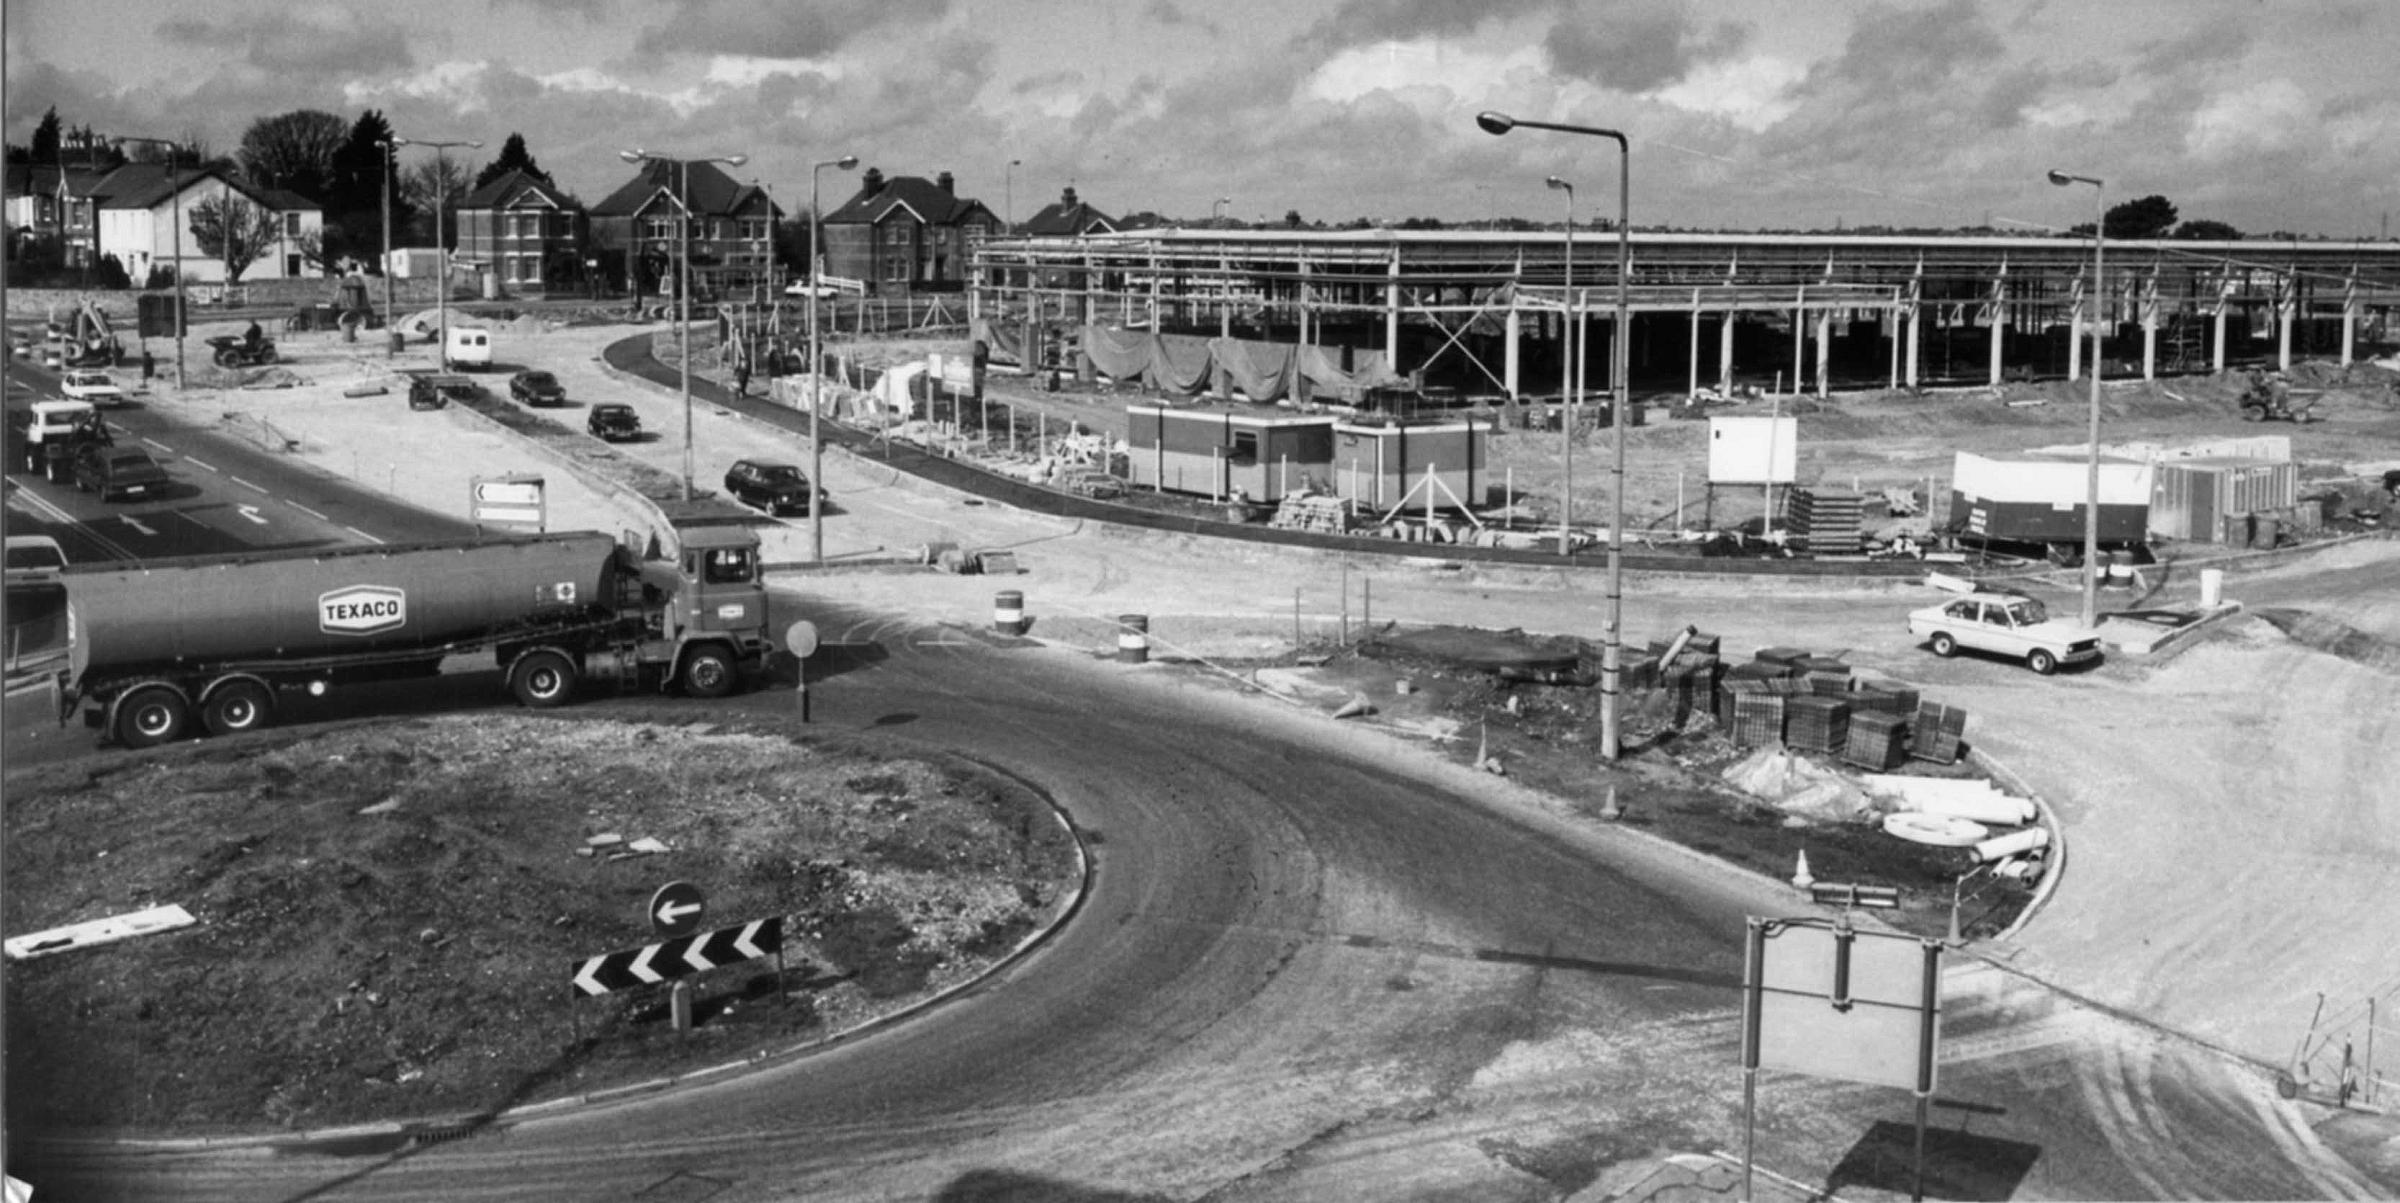 Pottery Junction, Branksome,  pictured in March 1983 as the construction of the new retail park is taking place on the former Redlands Pipes site.